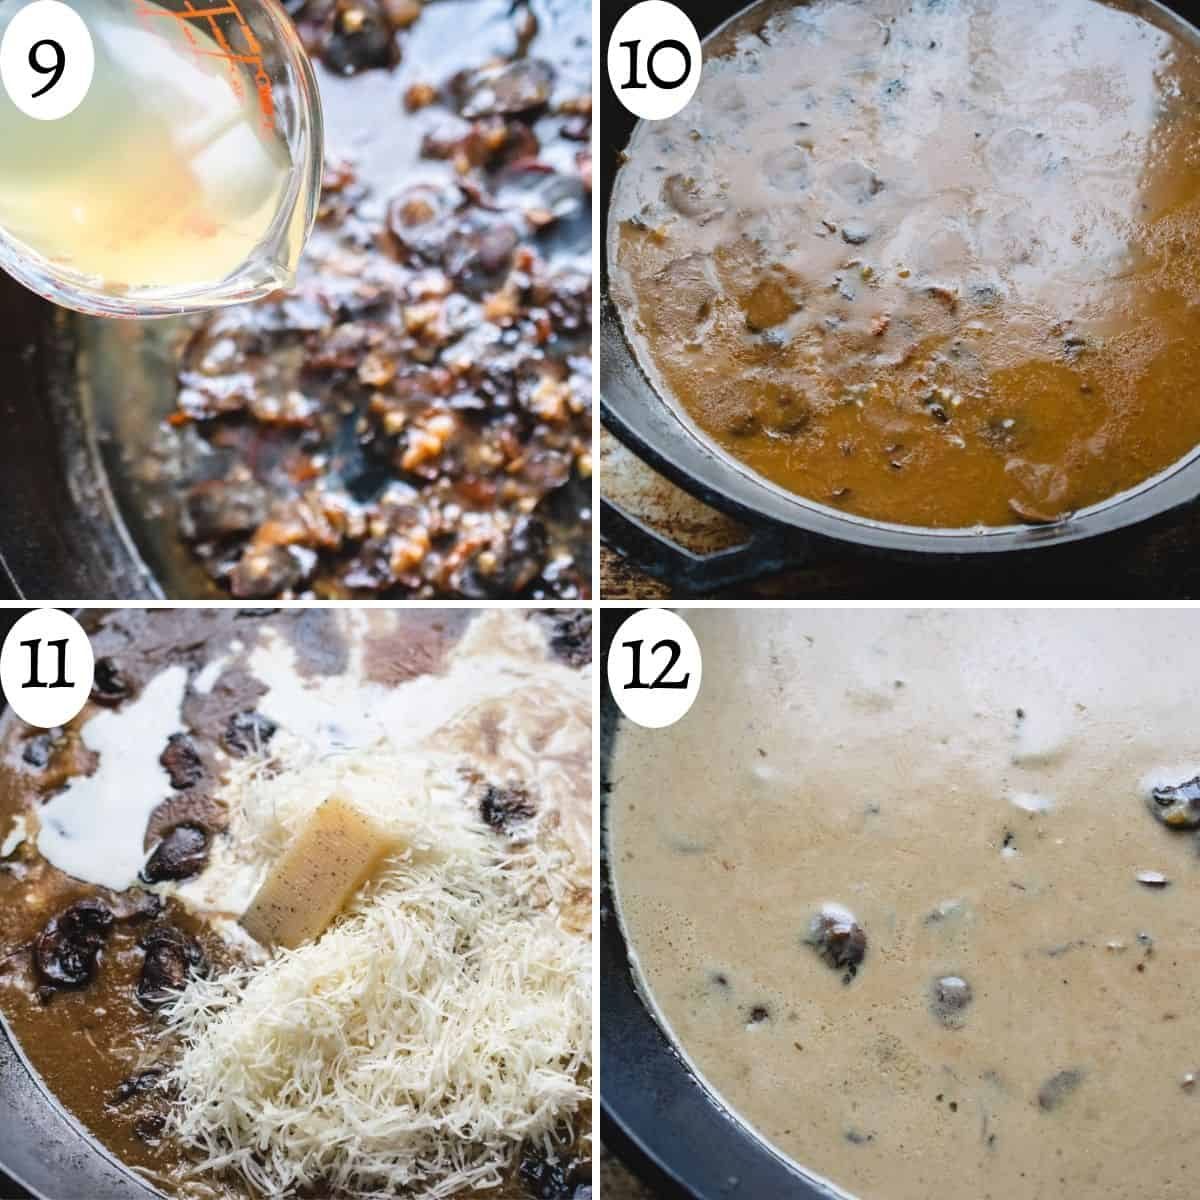 4 images in a collage showing numbered steps to making the cream of mushroom sauce.